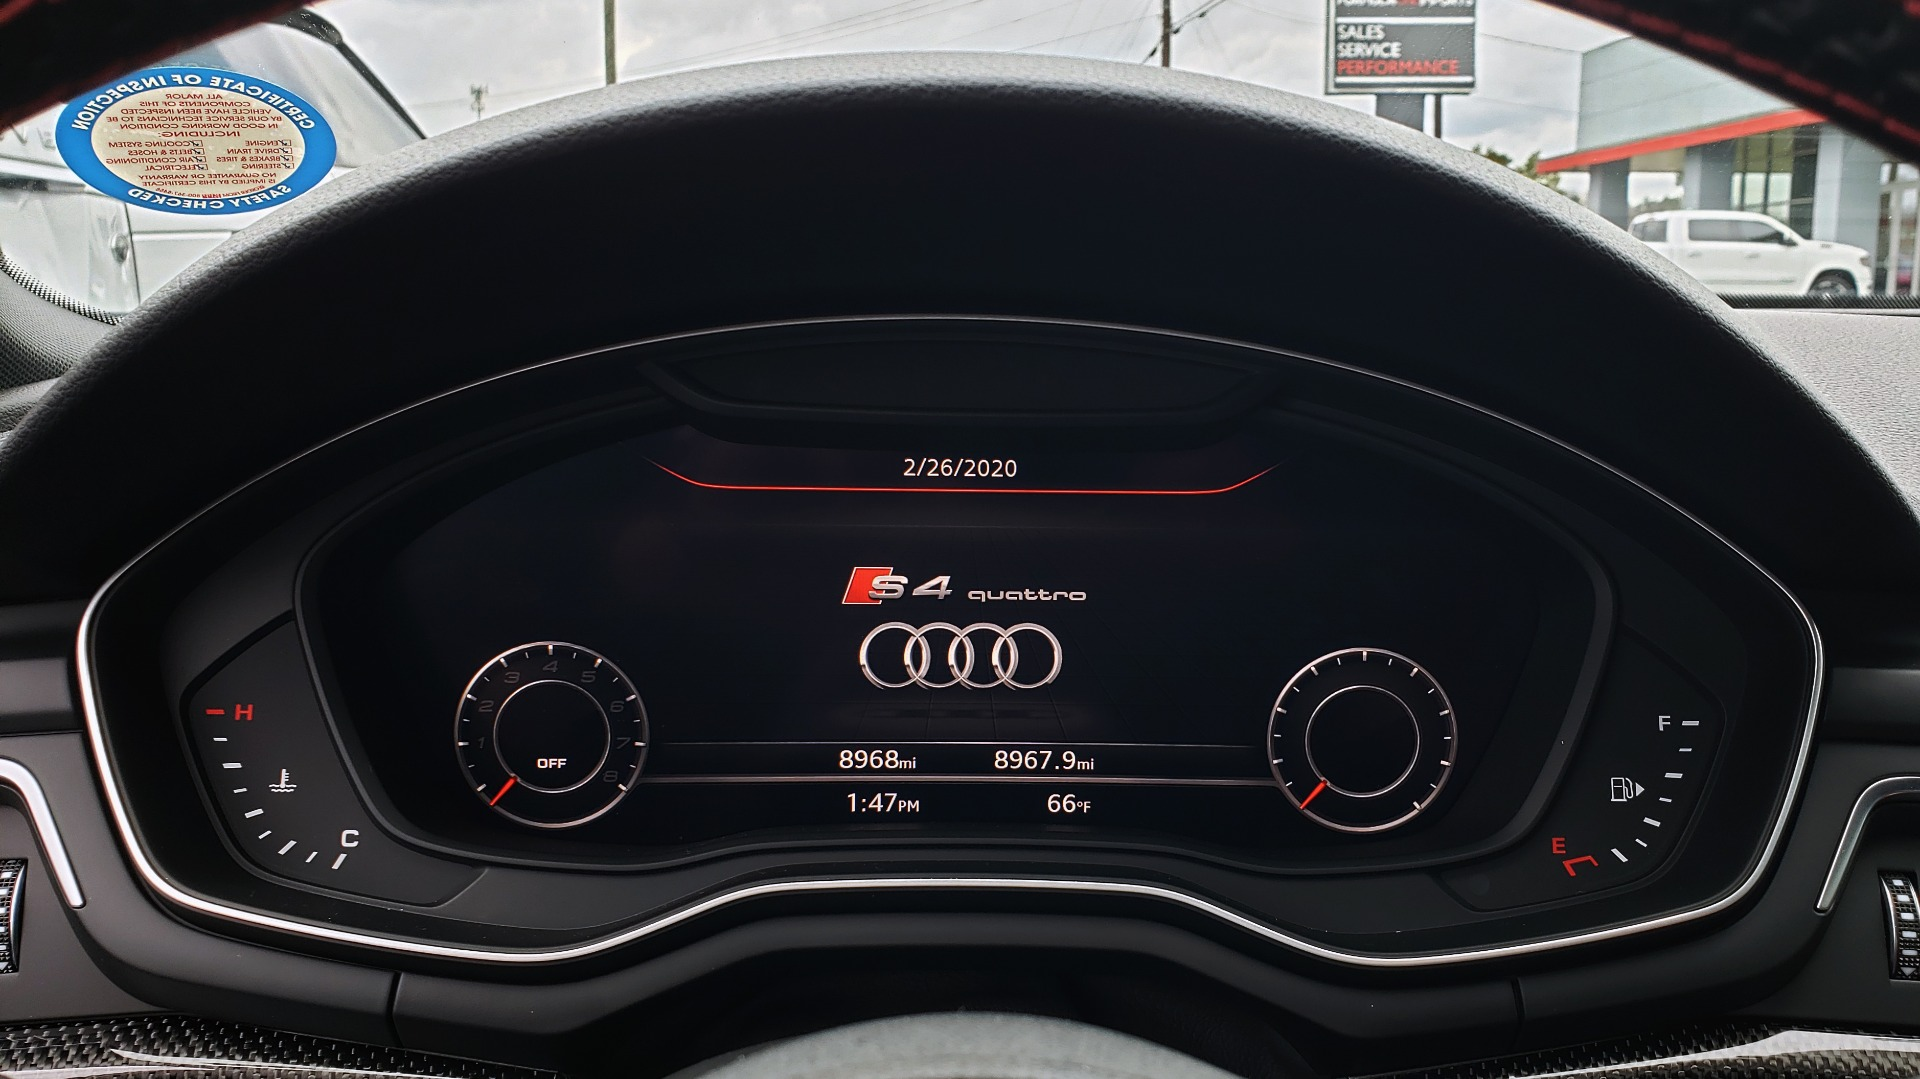 Used 2019 Audi S4 PREMIUM PLUS / AWD / NAV / SUNROOF / B&O SOUND / REARVIEW for sale Sold at Formula Imports in Charlotte NC 28227 51